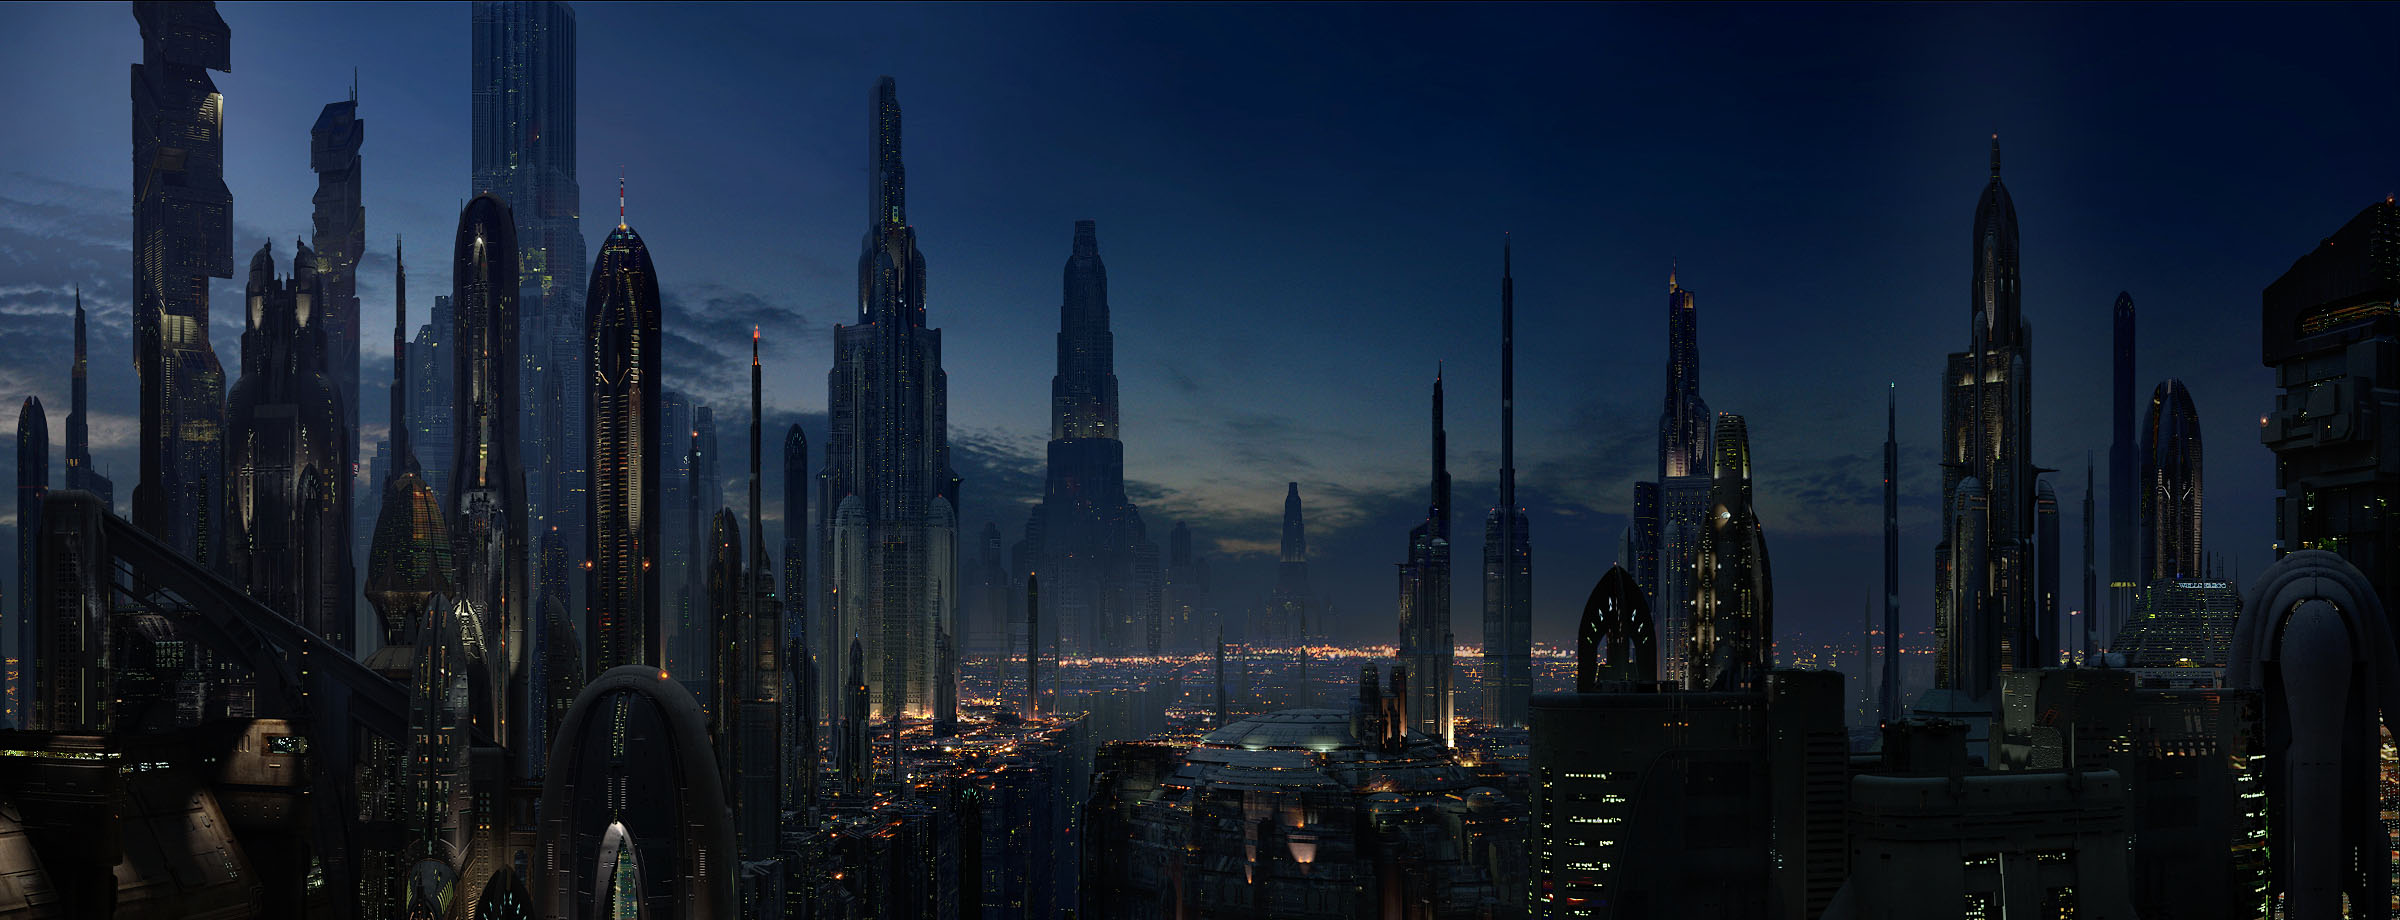 Coruscant Coruscant_at_night